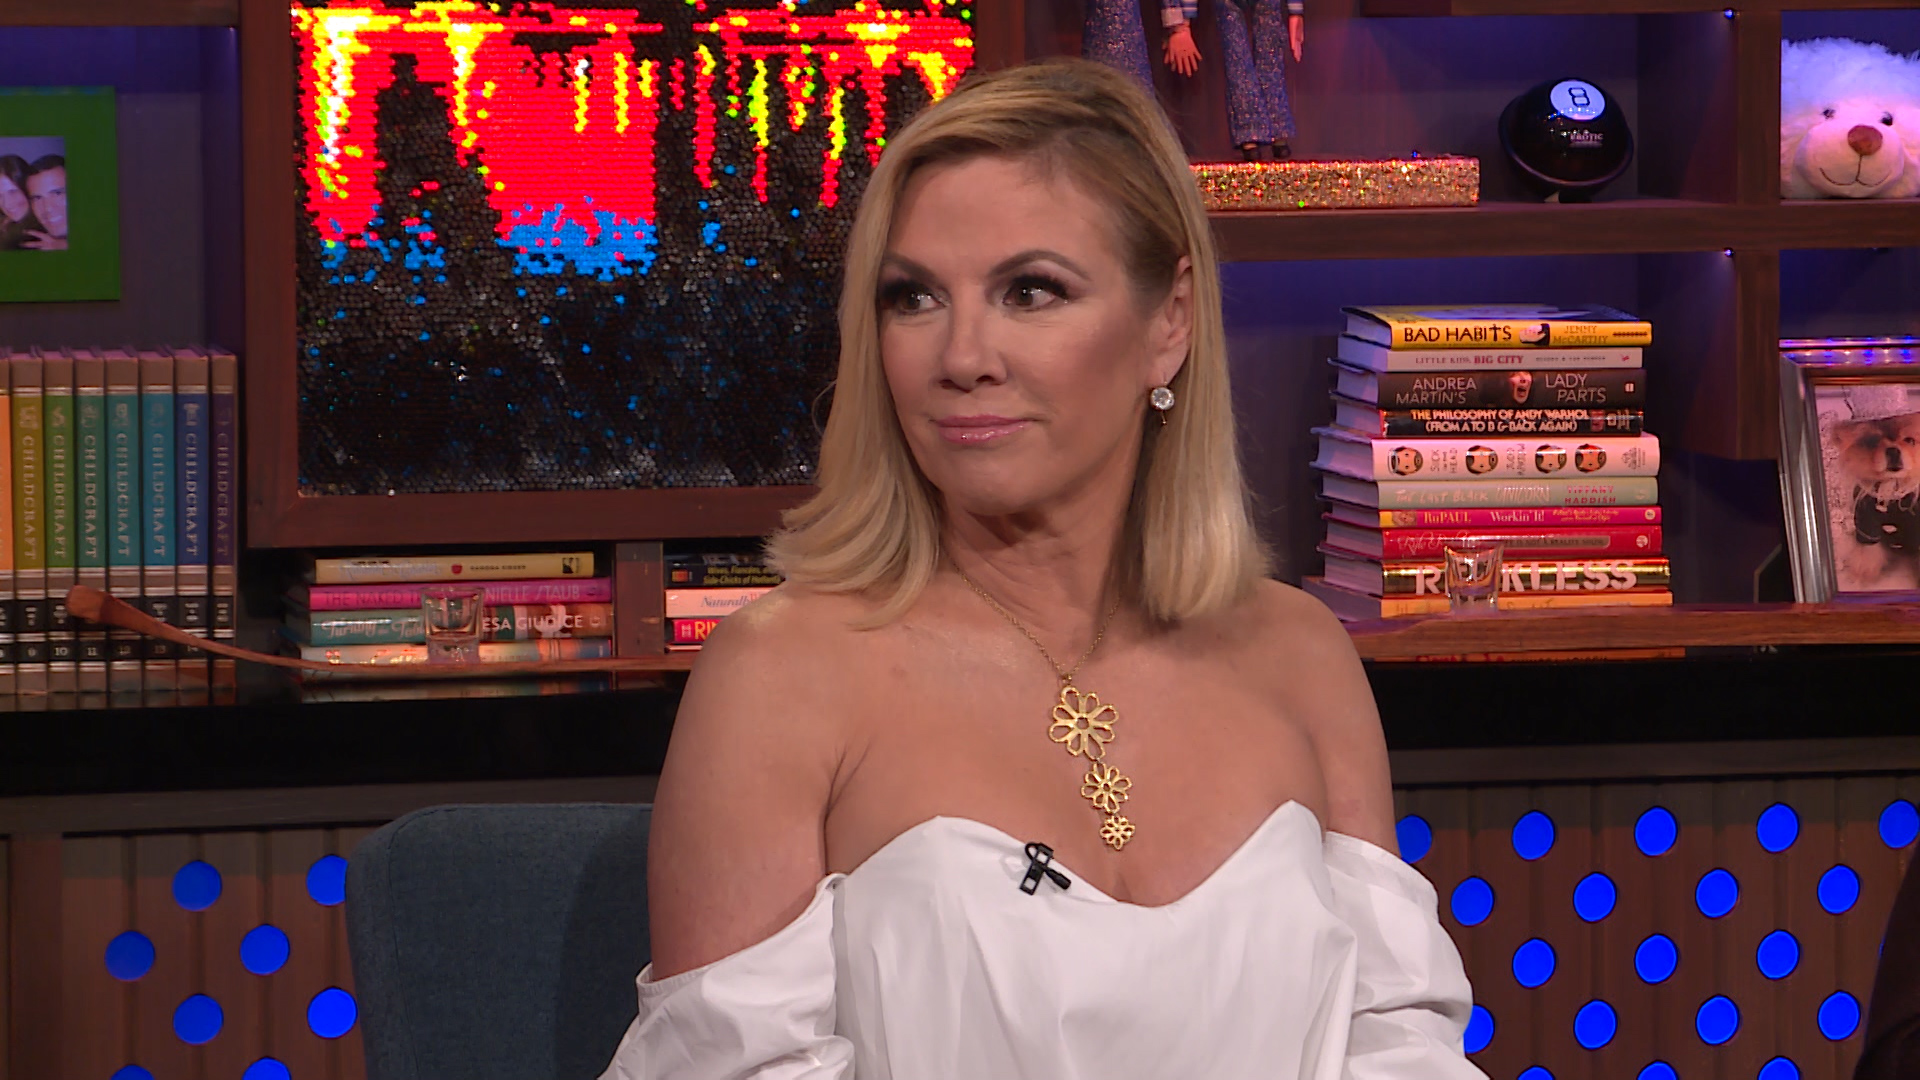 What is Ramona Singer's Biggest #RHONY Regret?